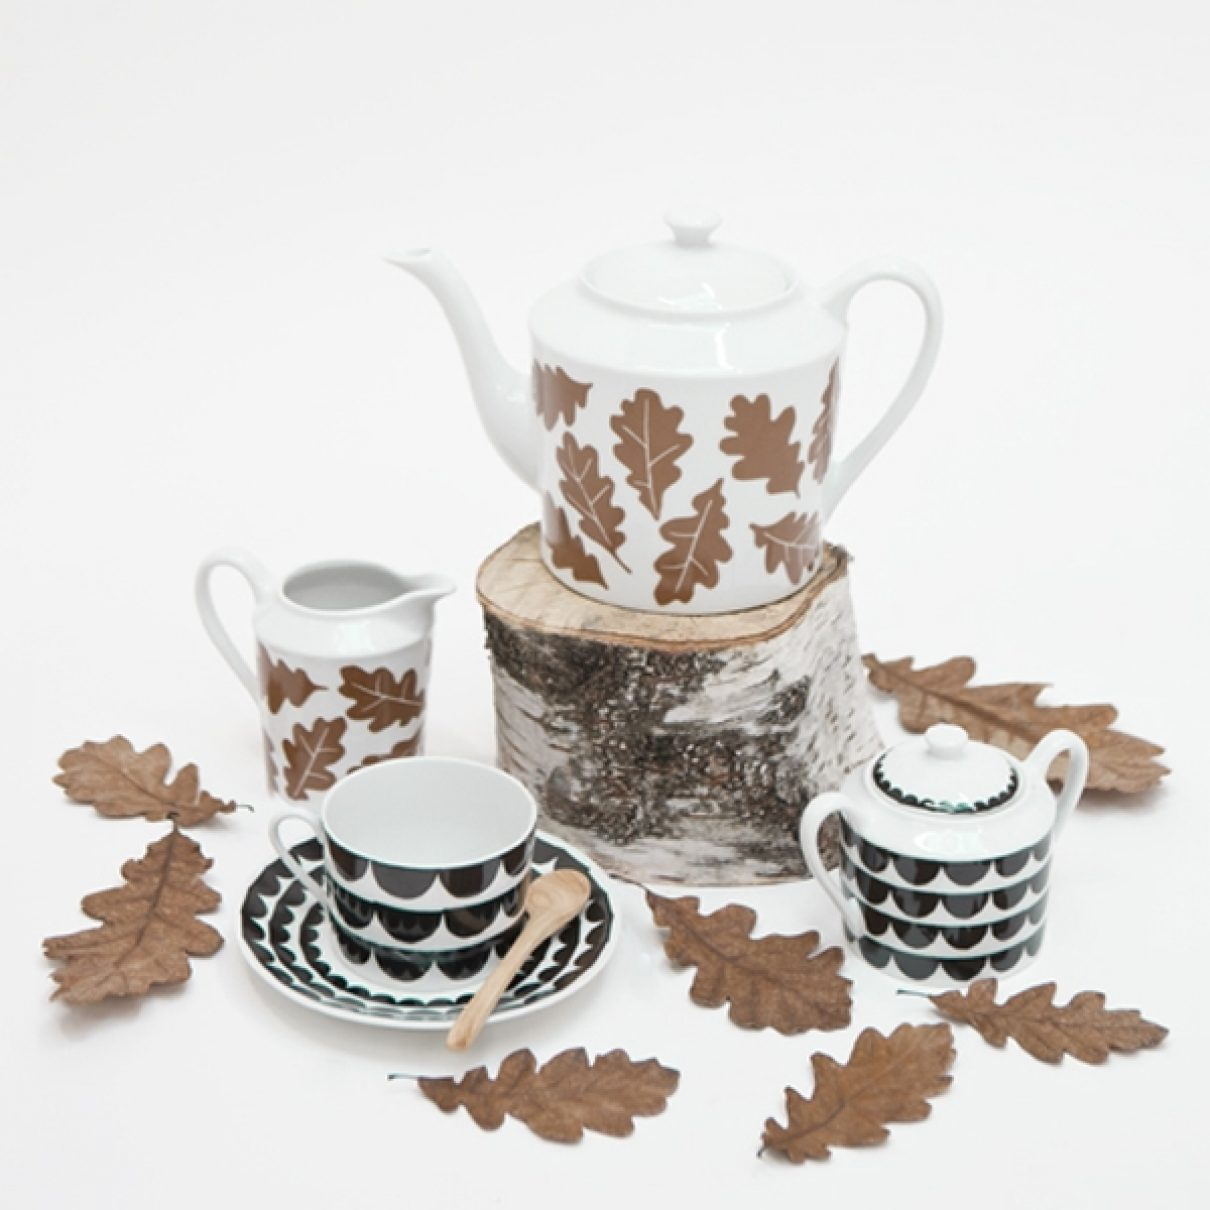 Mix & Match servies van House of Rym